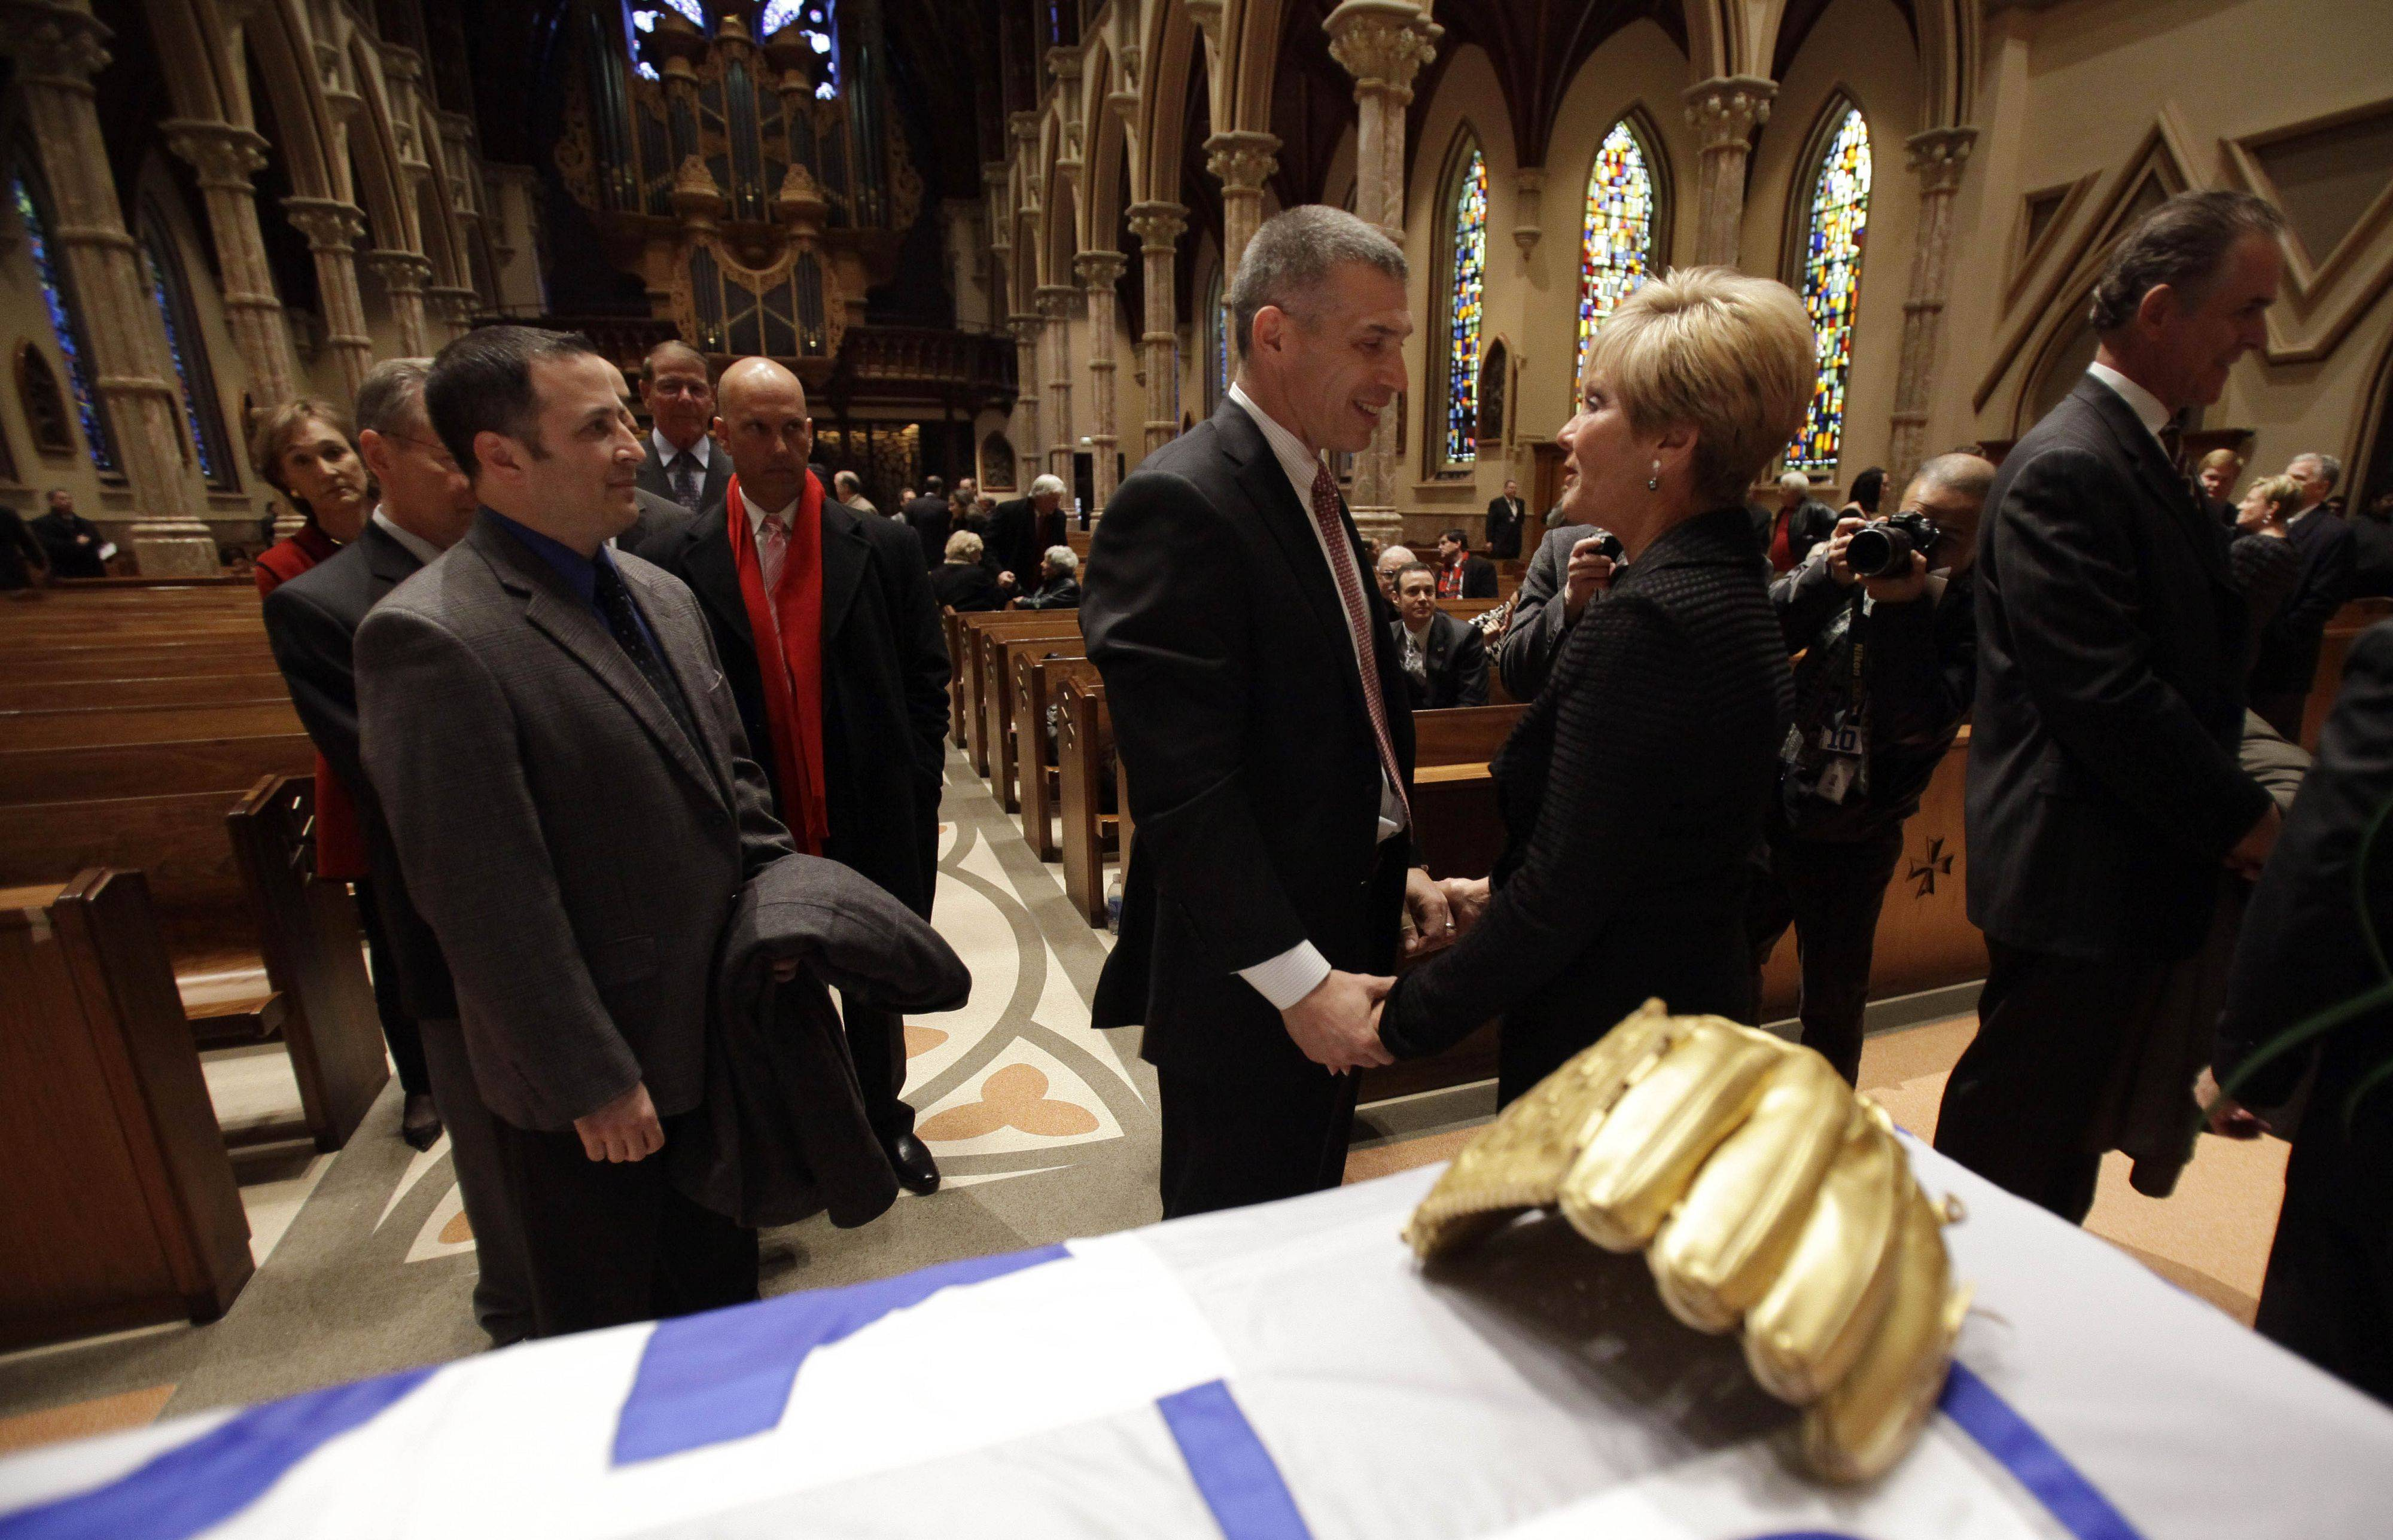 New York Yankees manager Joe Girardi, center left, talks to Vicki Santo, wife of Chicago Cubs great and longtime radio announcer Ron Santo, during the visitation at Holy Name Cathedral, Thursday, Dec. 9, 2010, in Chicago. Ron Santo, a nine-time all-star, died Thursday, Dec. 2 in an Arizona hospital from complication of bladder cancer. He was 70. (AP Photo/Nam Y. Huh, Pool)